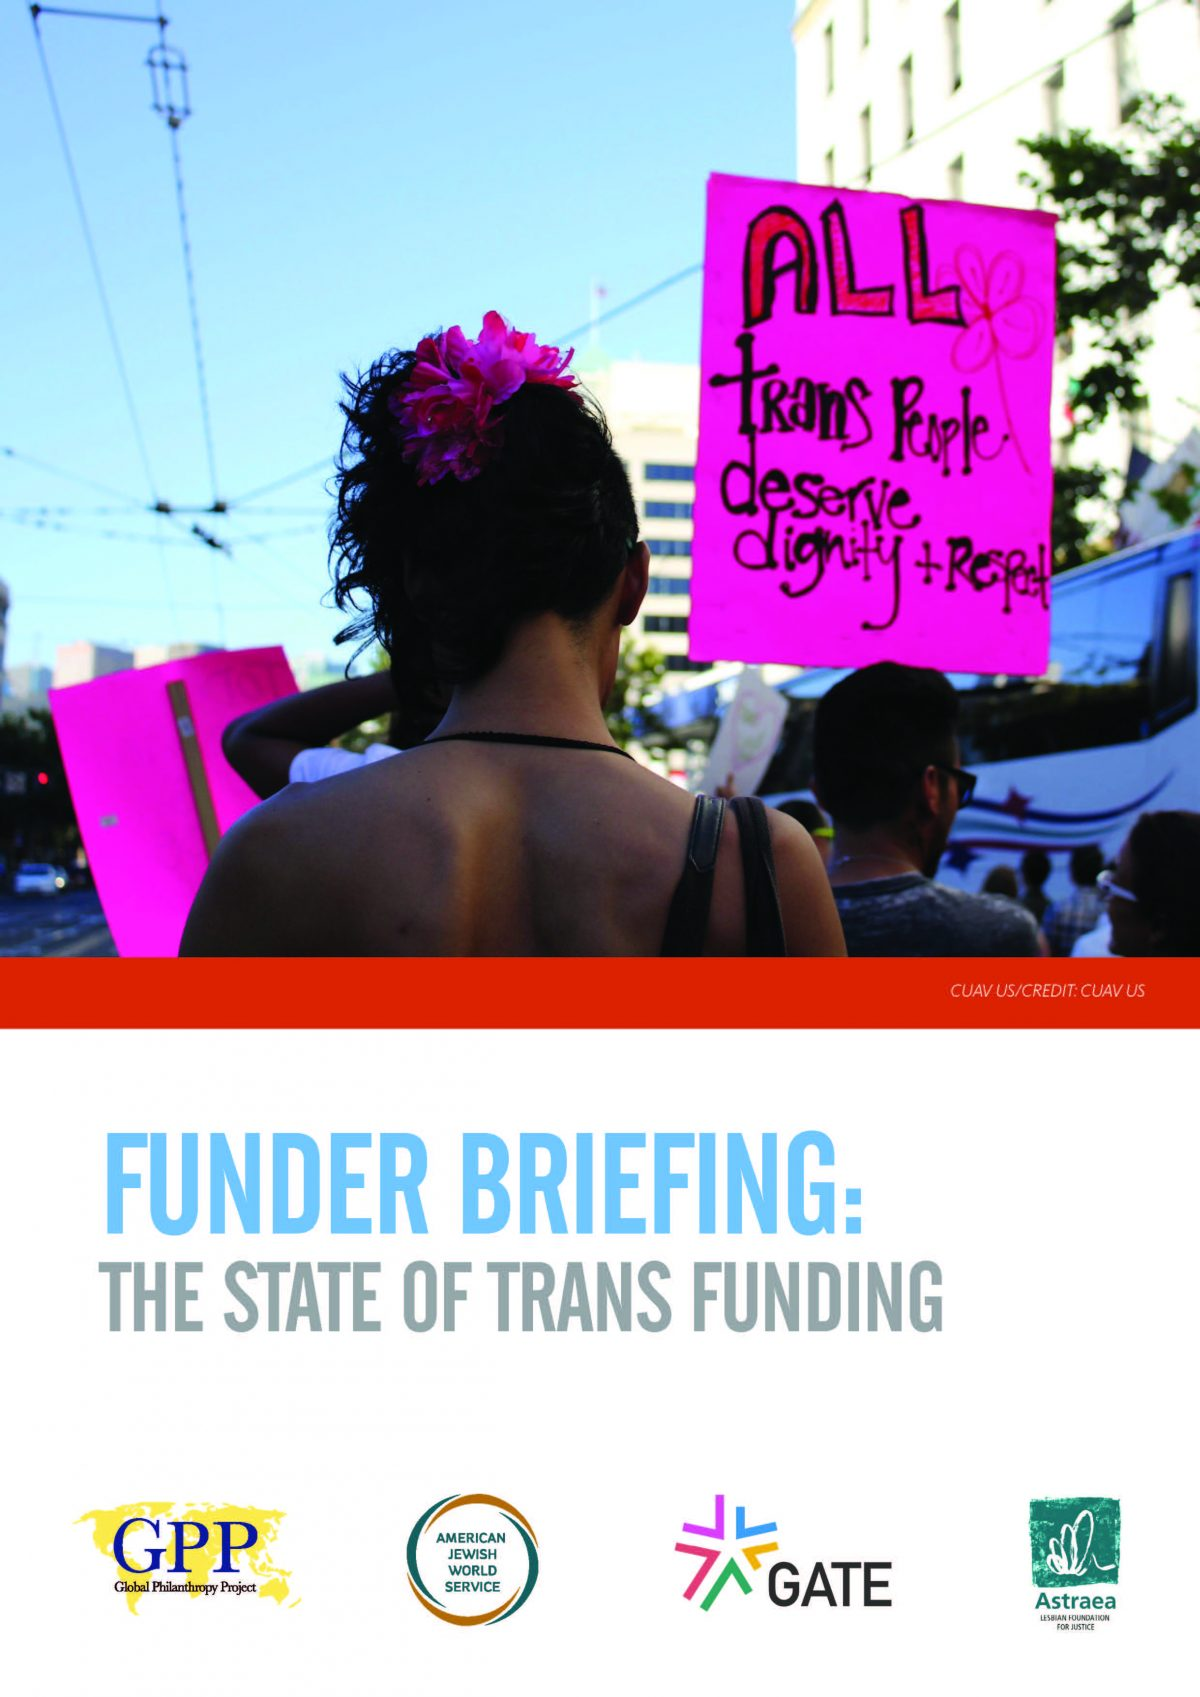 Funder Briefing: The State of Trans Funding